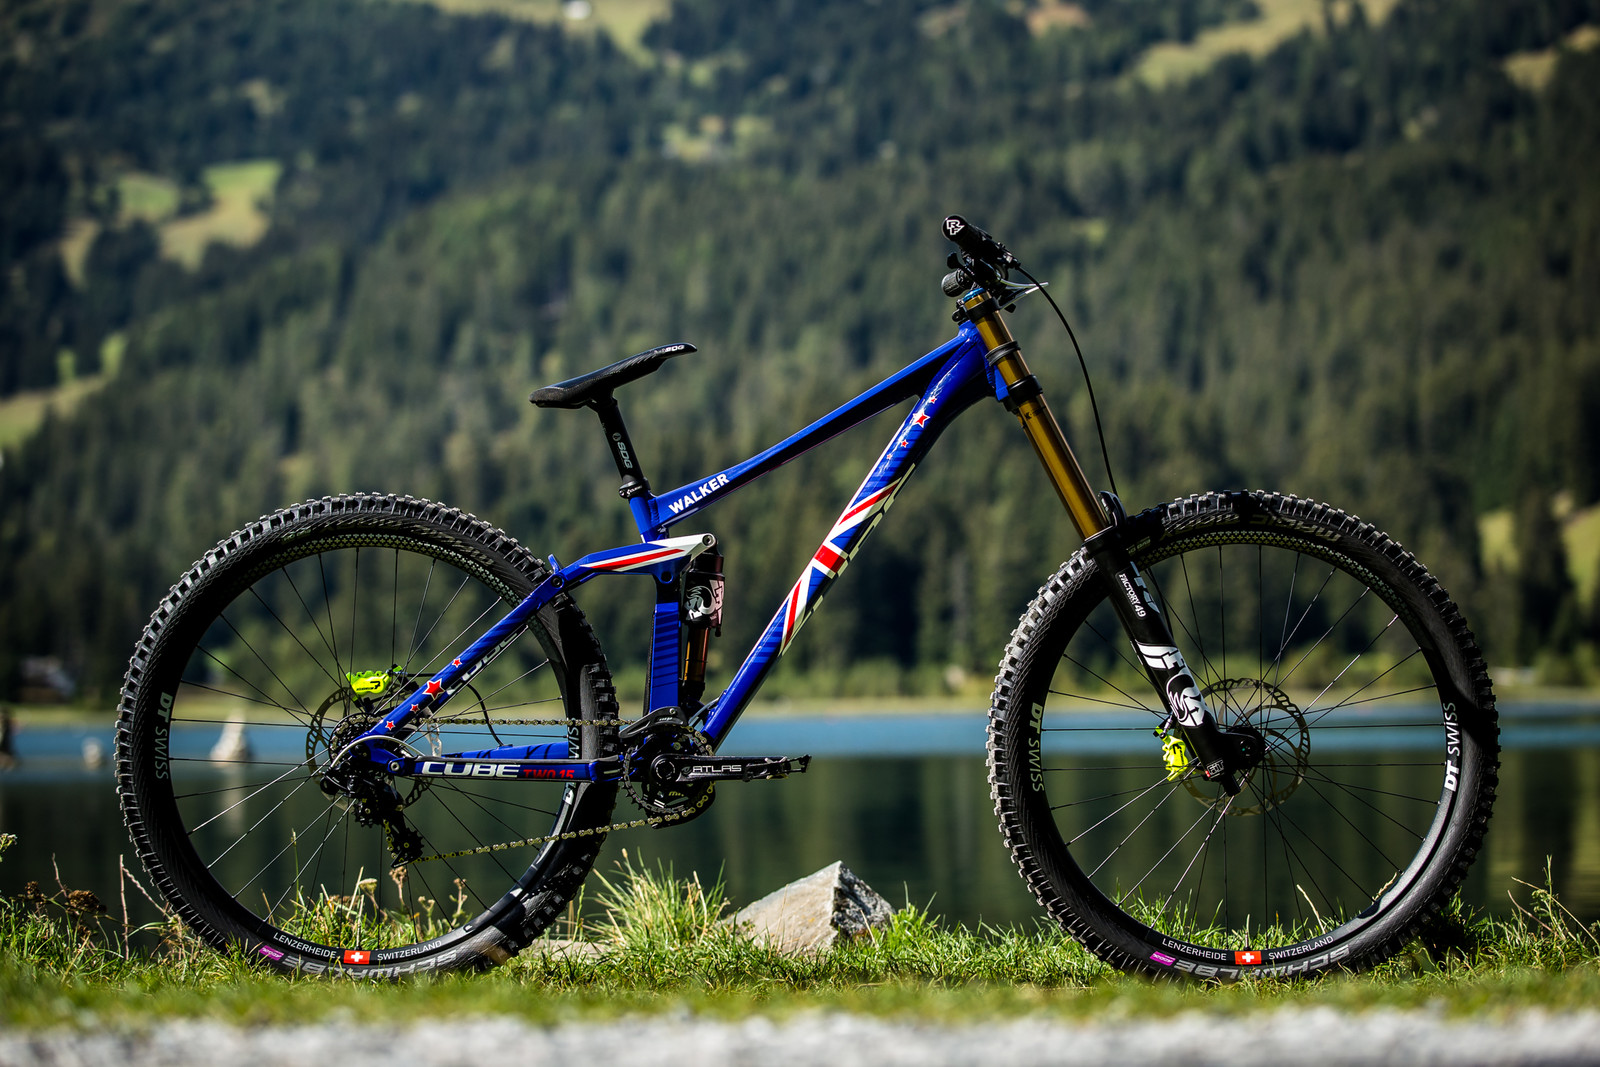 Matt Walker's Cube 215 SL 29 - WORLD CHAMPS BIKES - Matt Walker and Max Hartenstern's Cubes - Mountain Biking Pictures - Vital MTB